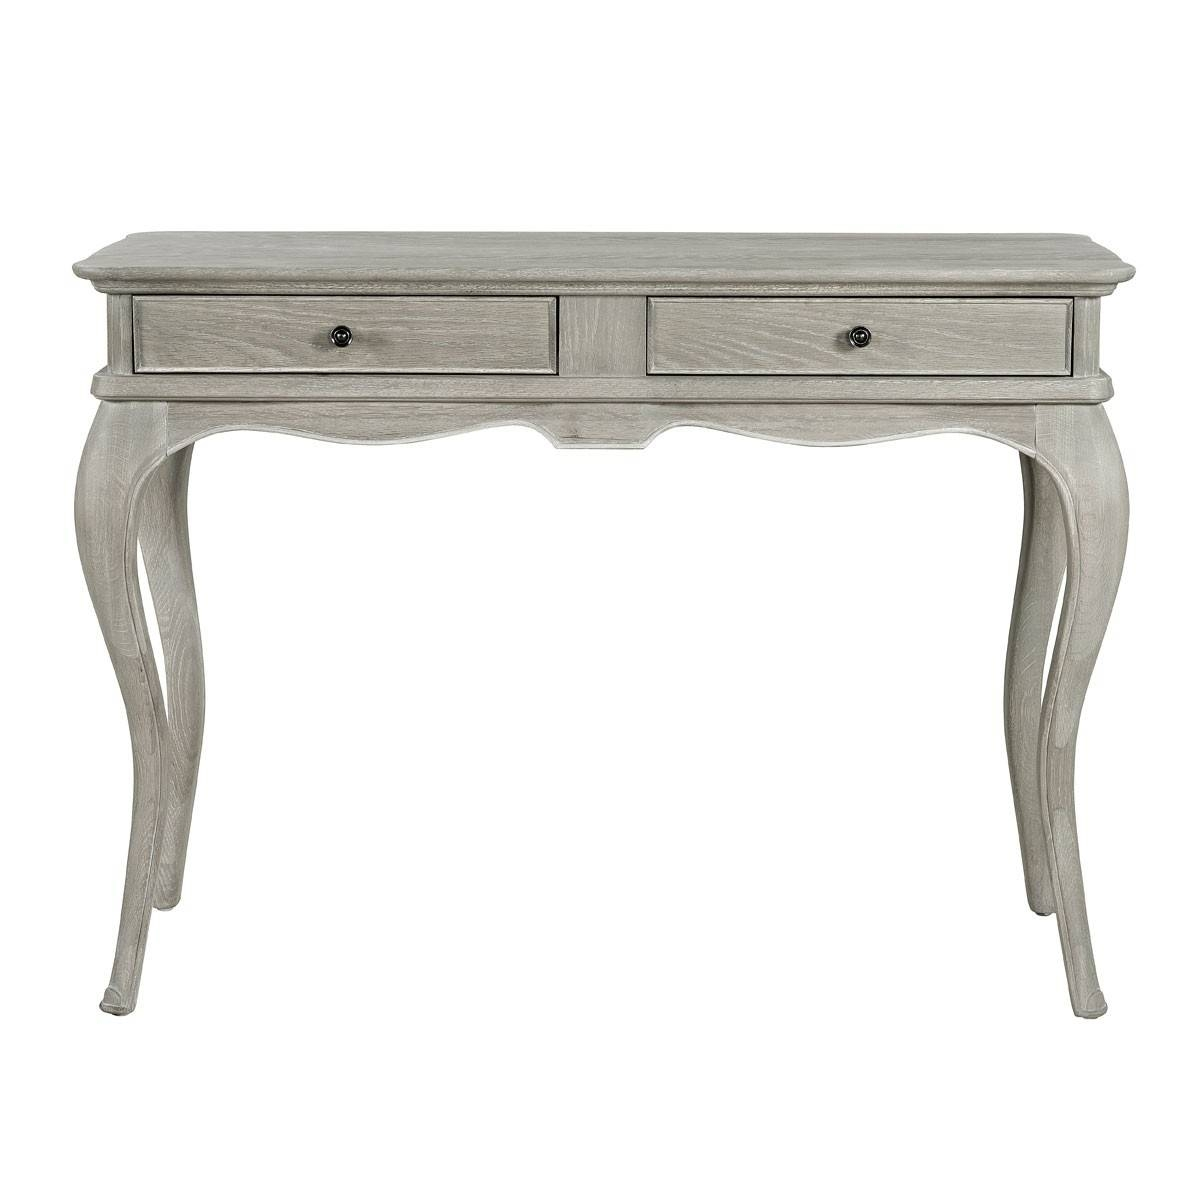 Camille French Style Dressing Table Mirror, Washed Oak | French in French Style Dressing Table Mirrors (Image 8 of 25)